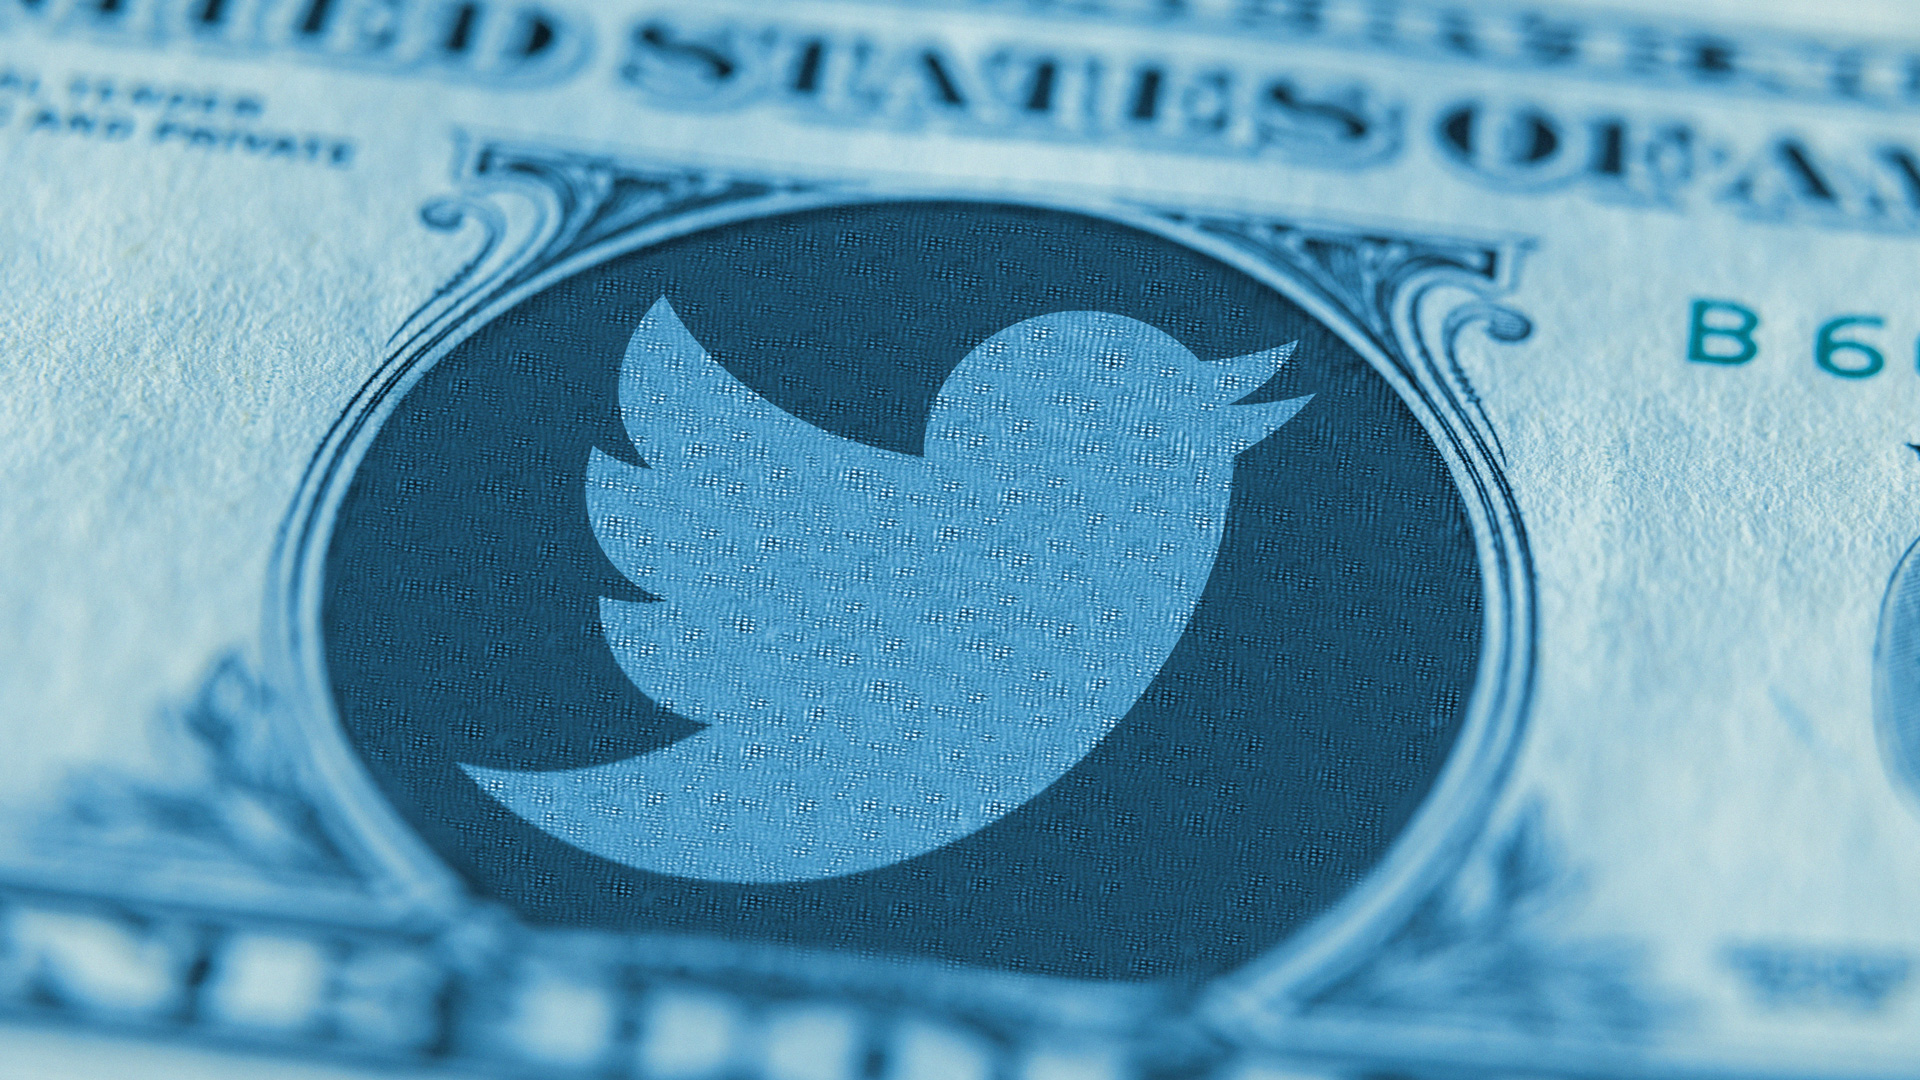 Twitter credited key verticals including cryptocurrency and sports betting for helping to drive adoption of its mobile application promotion products.